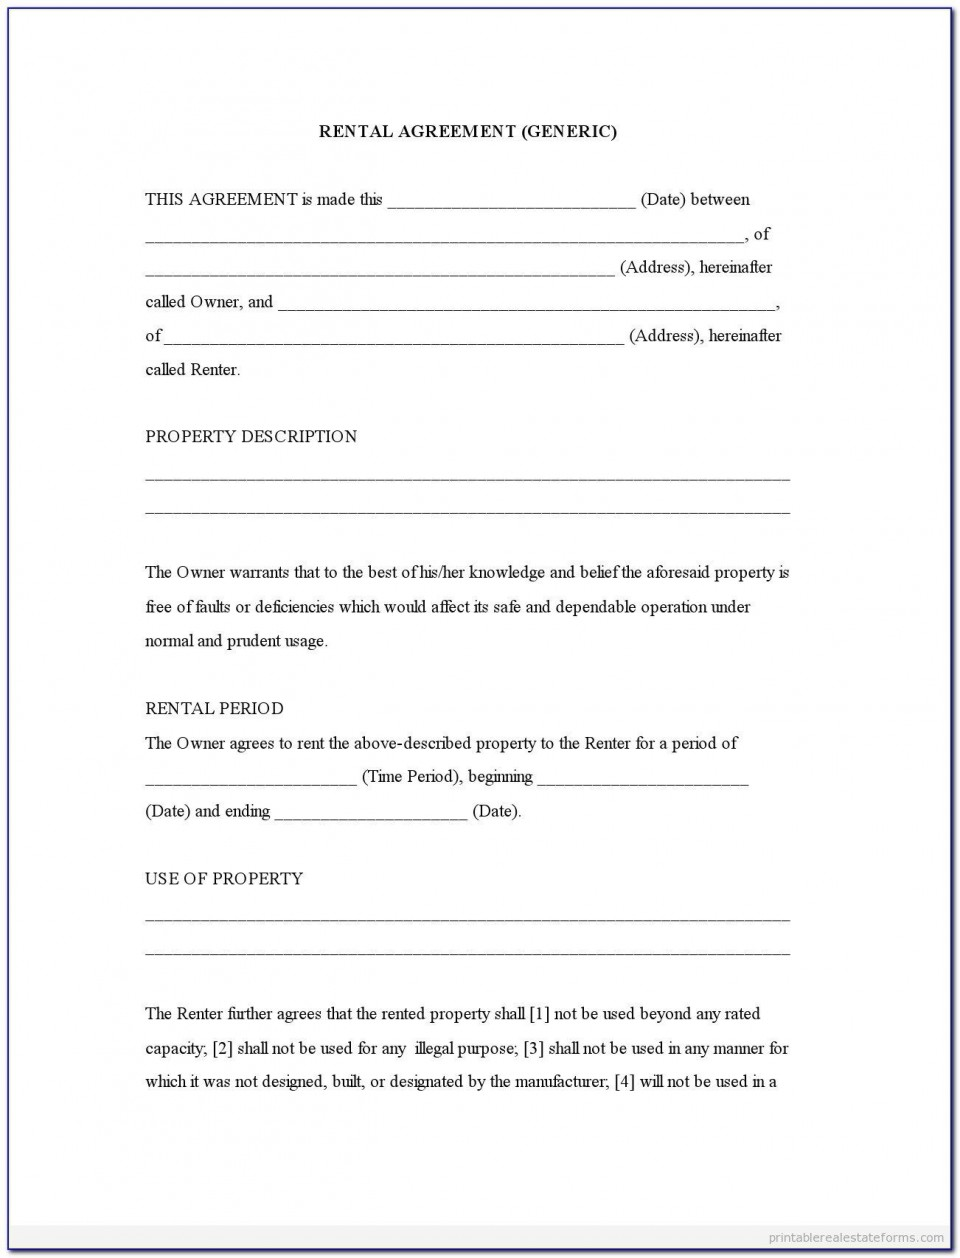 004 Exceptional Rental Agreement Template Word Free Picture  Room Doc In Tamil Format Download960